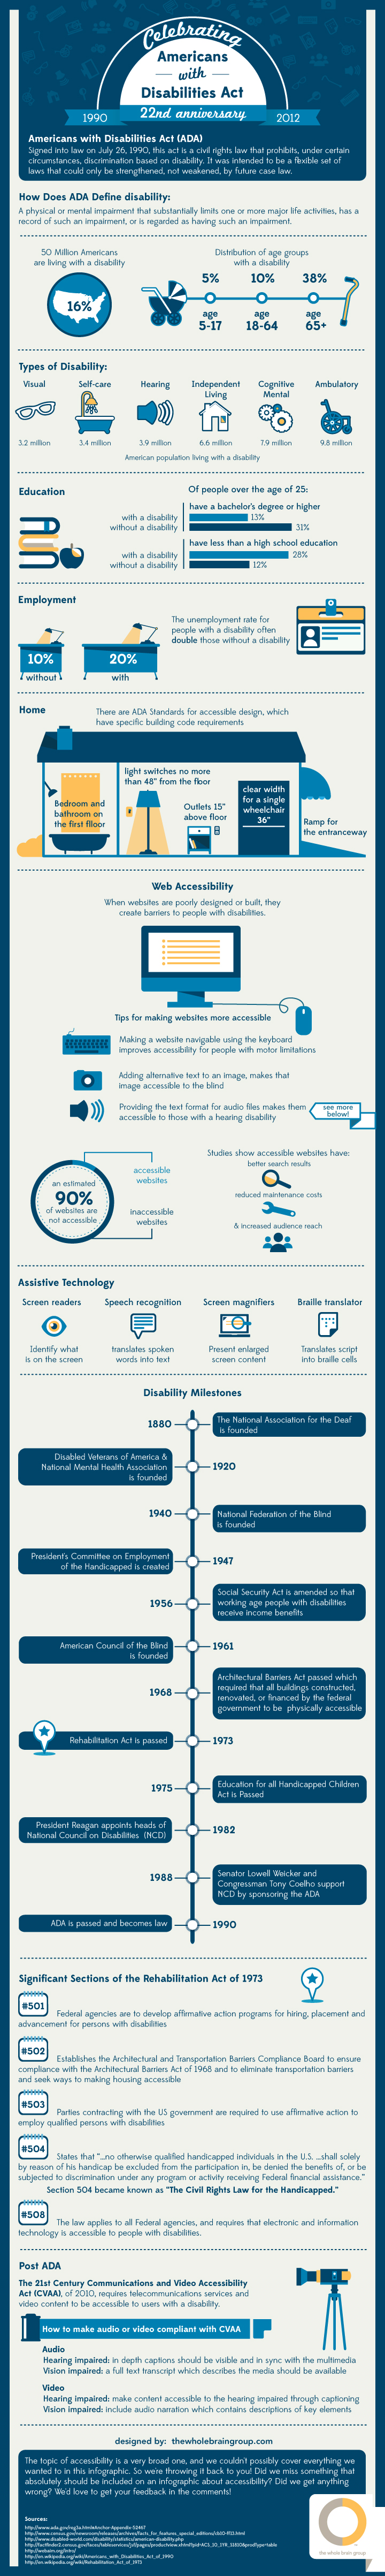 Celebrating ADAs 22nd Anniversary Infographic 2